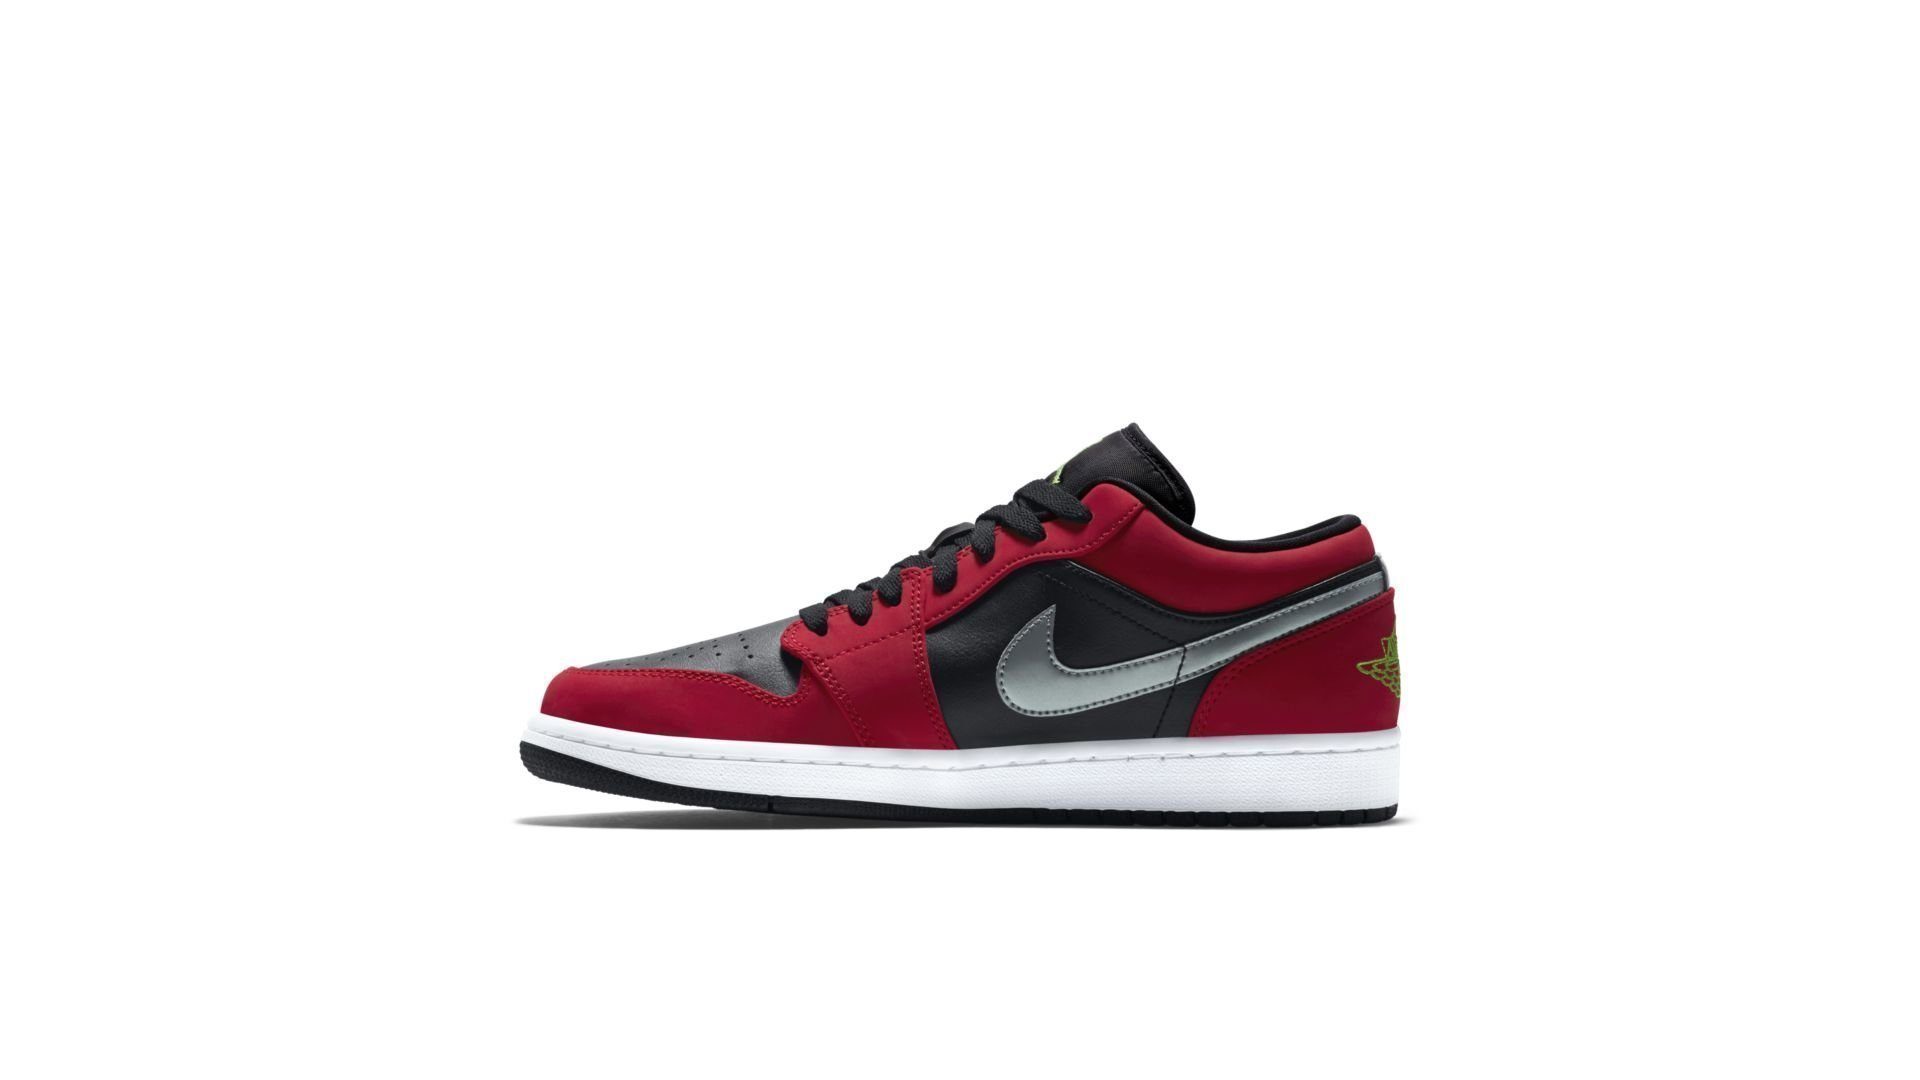 Jordan 1 Low Black Green Pulse Gym Red (553558-036)